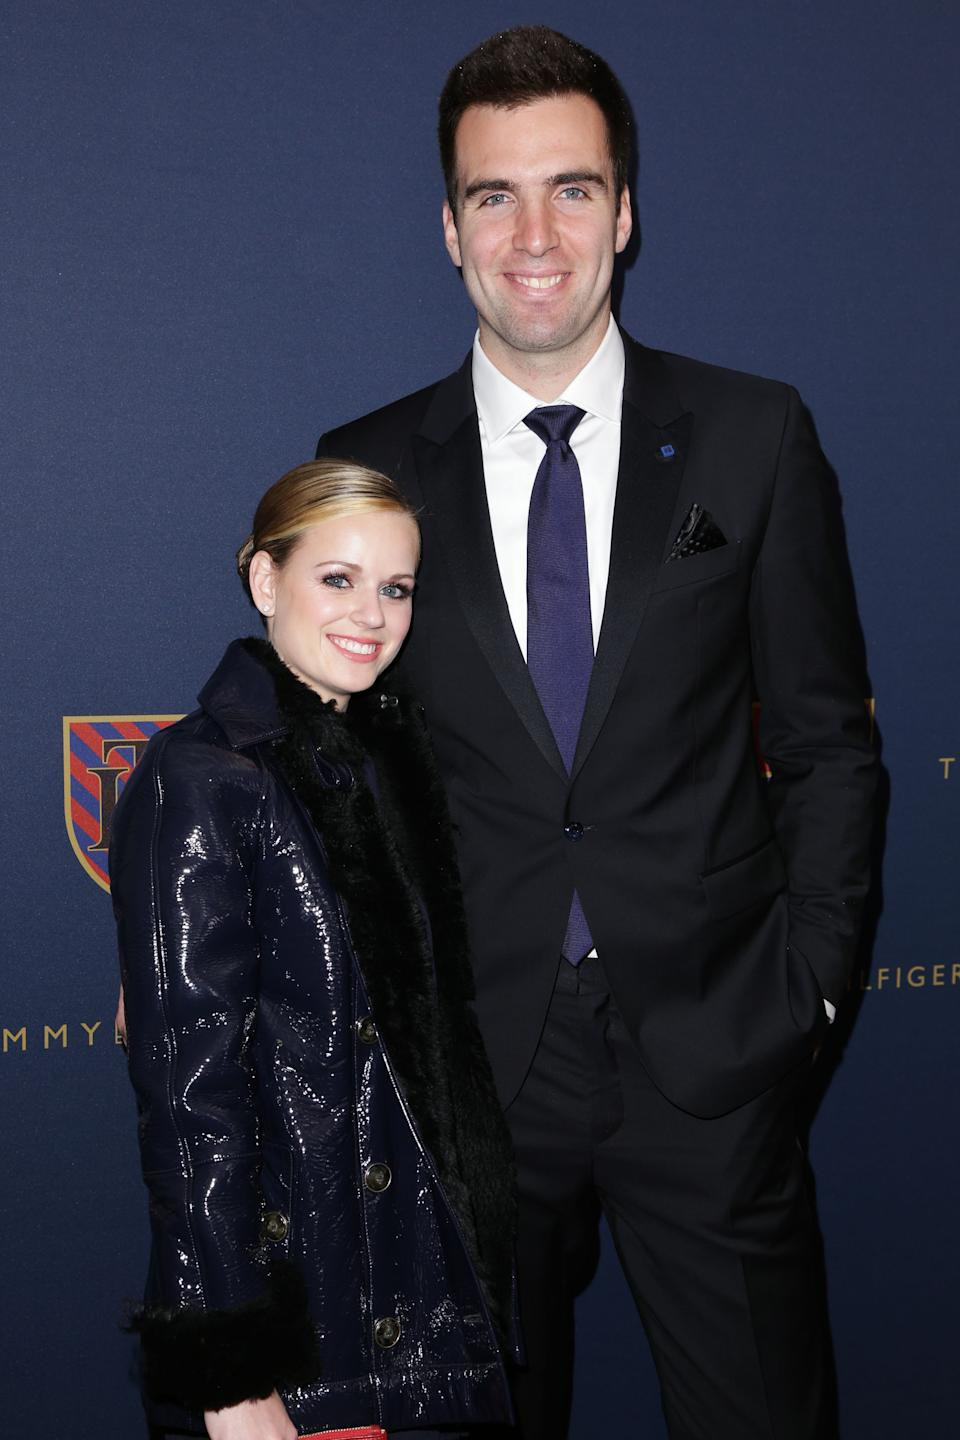 This image released by Starpix shows Baltimore Ravens quarterback Joe Flacco, right, and his wife Dana Grady at the Tommy Hilfiger Men's Fall 2013 collection, Friday, Feb. 8, 2013 during Fashion Week in New York. (AP Photo/Starpix, Andrew Toth)